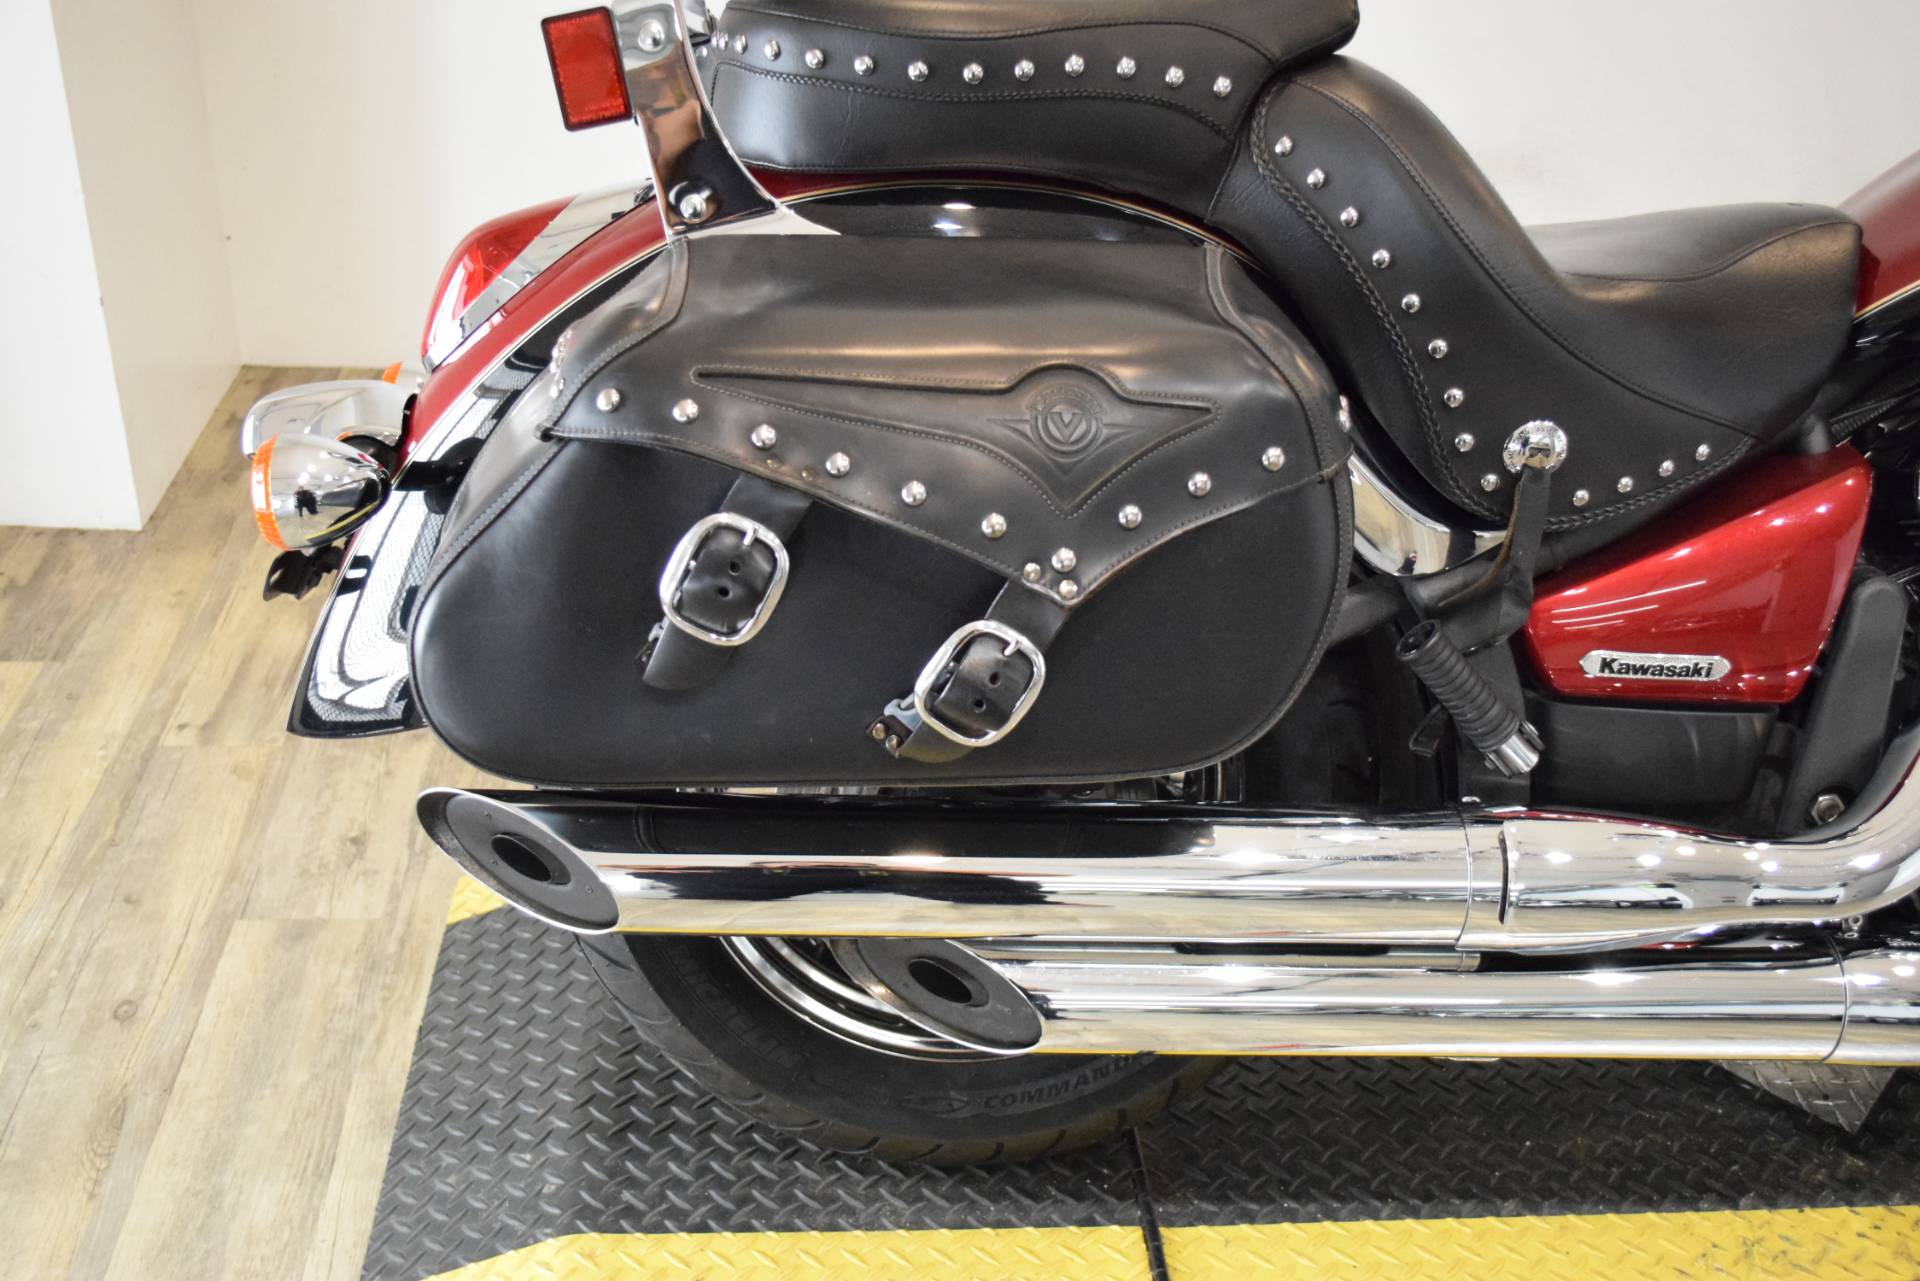 2008 Kawasaki Vulcan® 900 Classic LT in Wauconda, Illinois - Photo 8